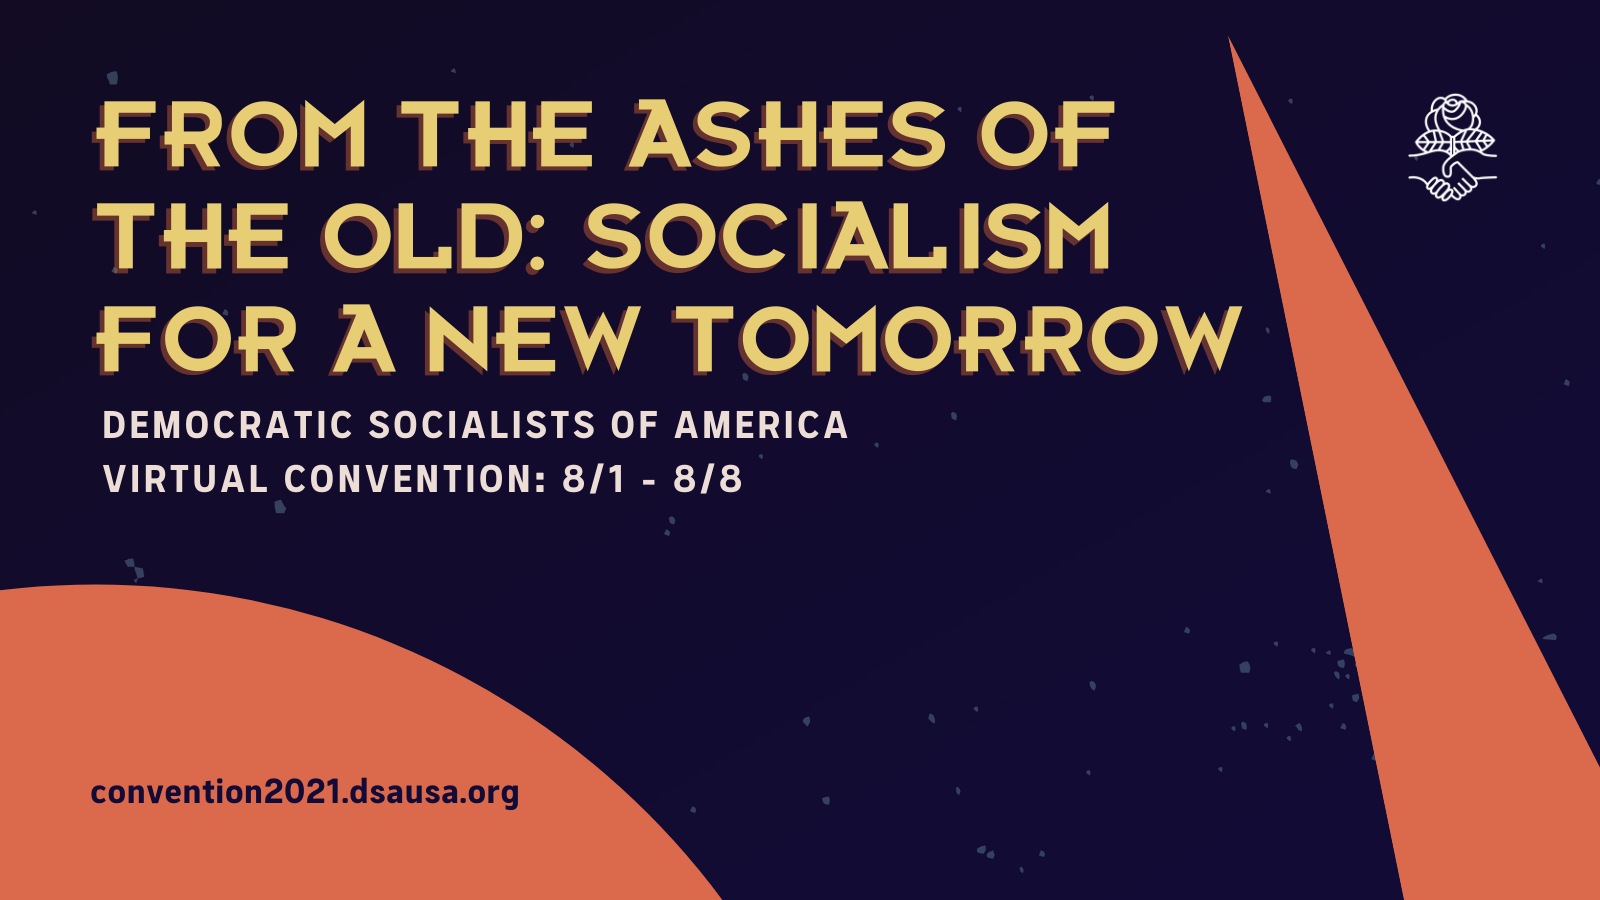 From the Ashes of the Old: Socialism for a New Tomorrow. Democratic Socialists of America Virtual Convention: 8/1-8/8 convention2021.dsausa.org